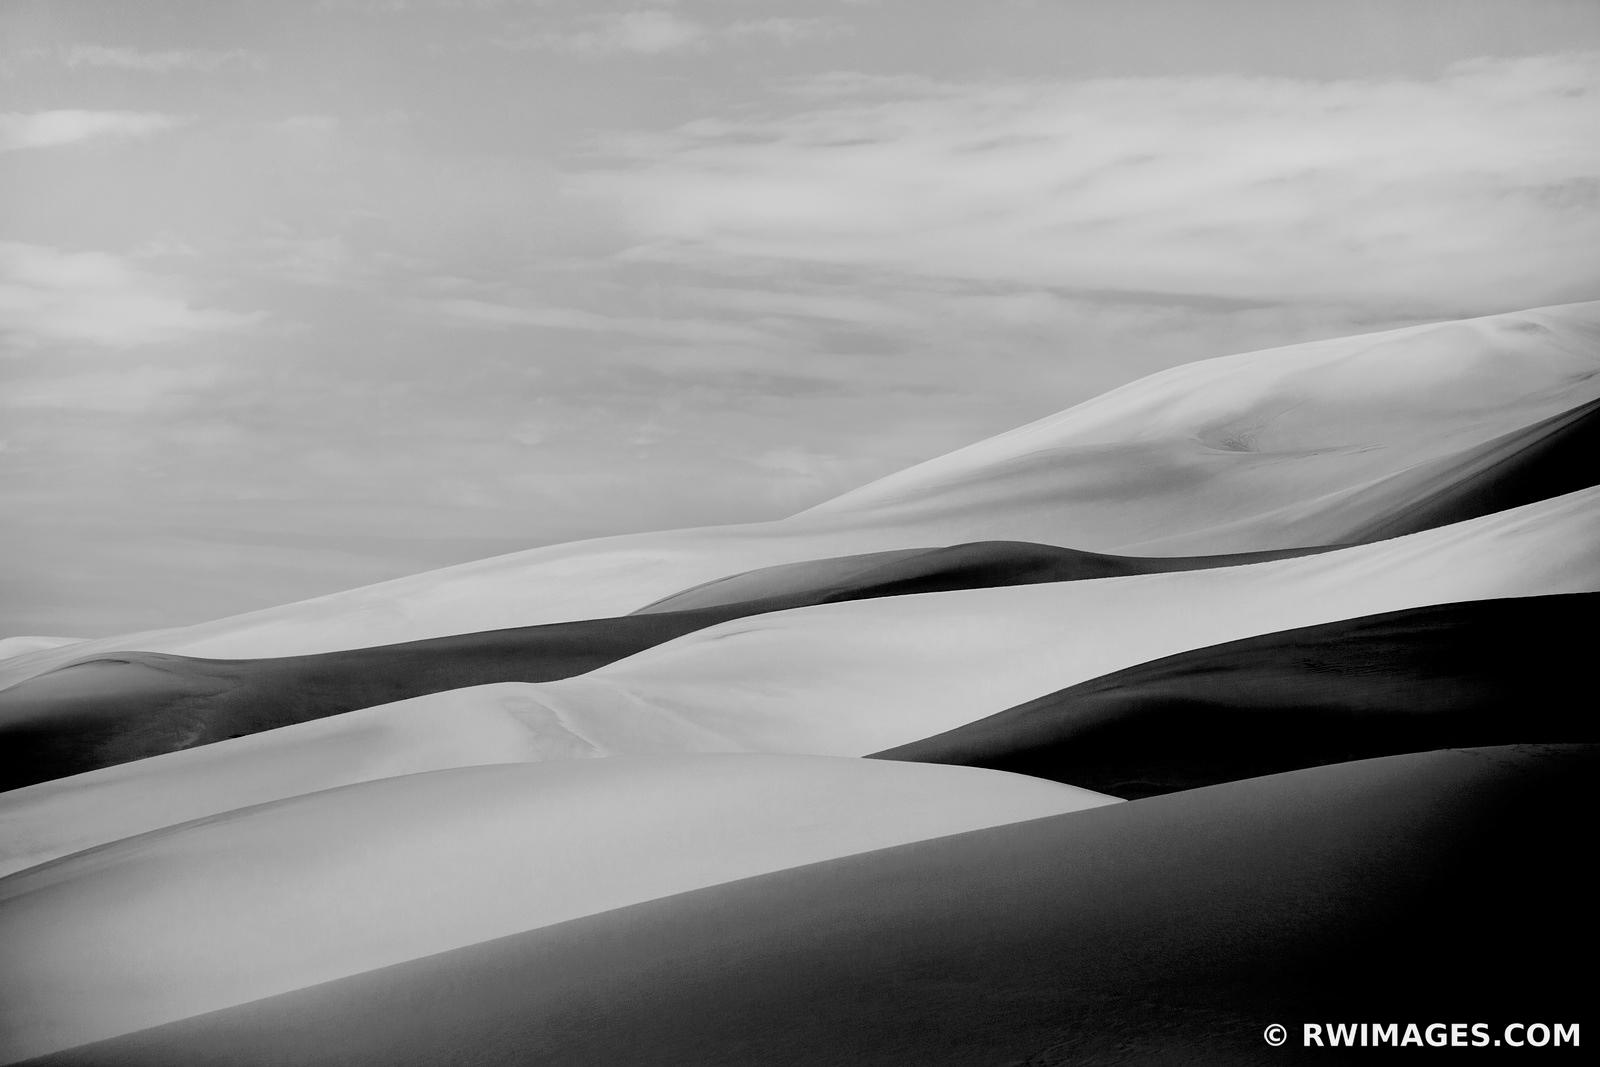 NATURE ABSTRACT GREAT SAND DUNES NATIONAL PARK COLORADO BLACK AND WHITE